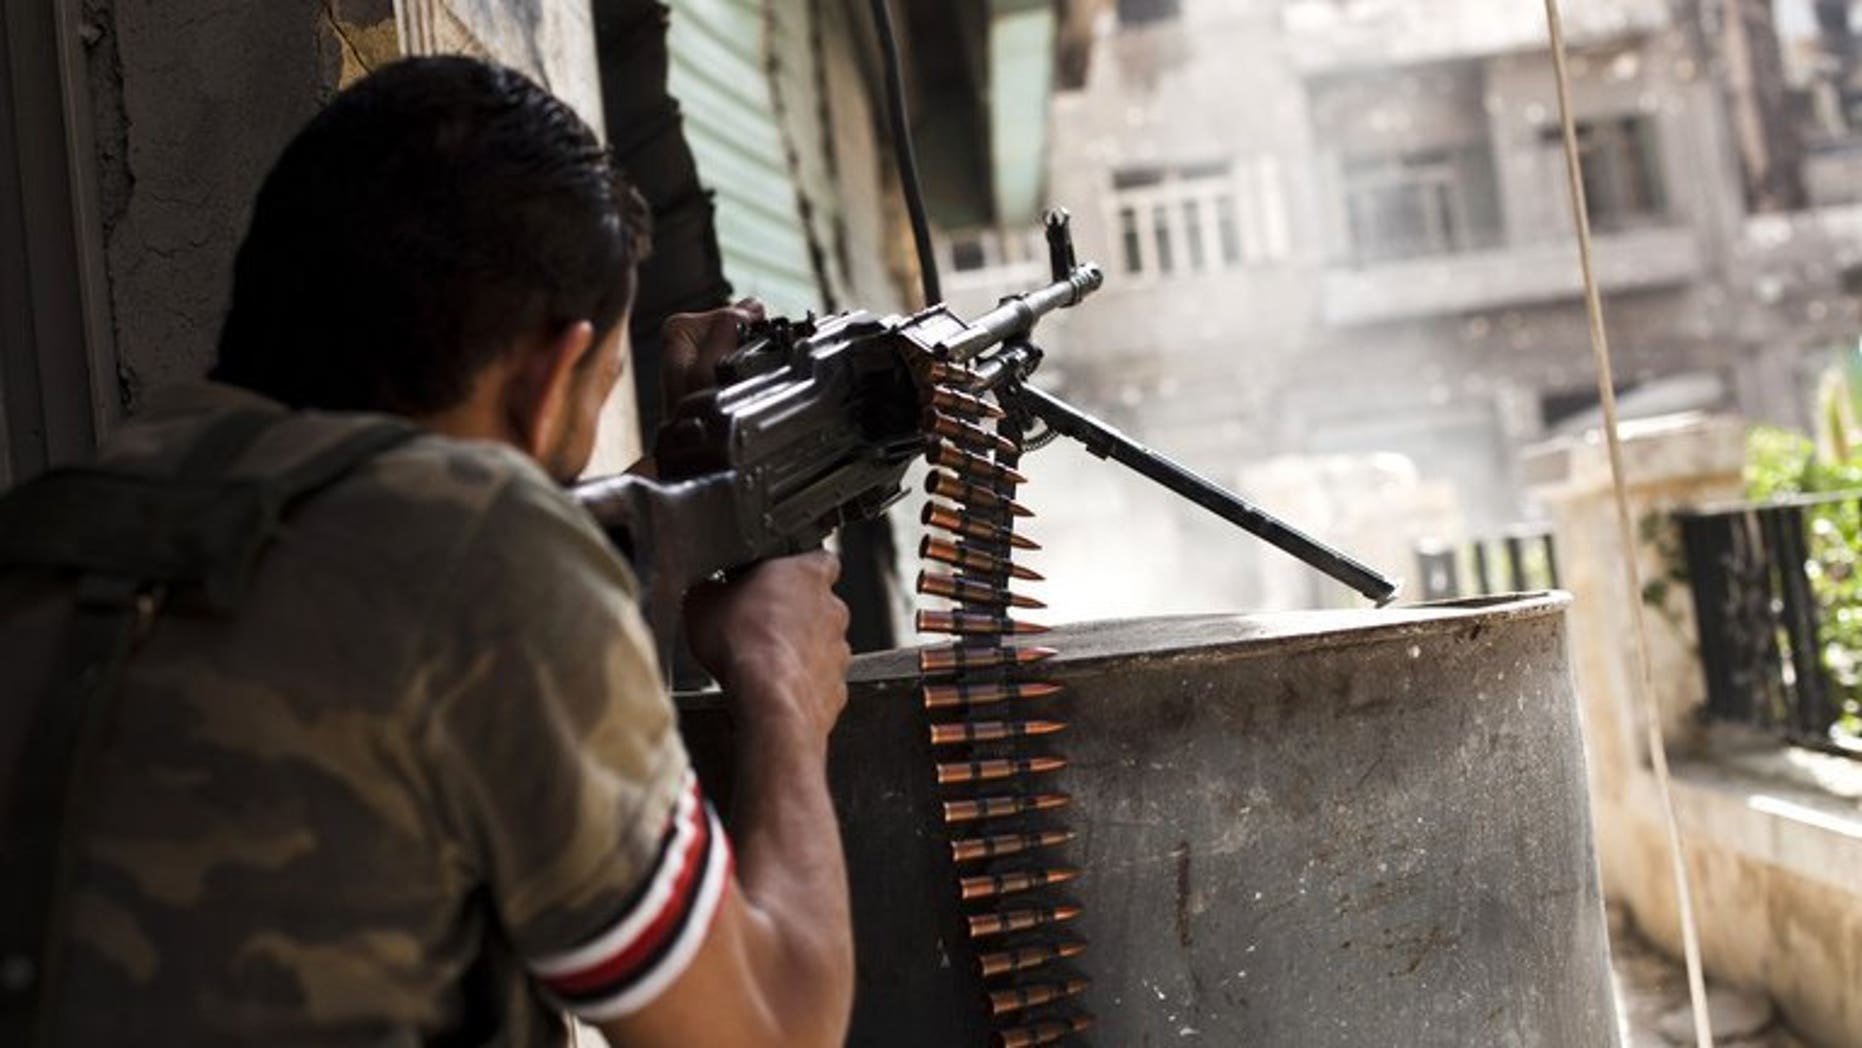 """A Syrian rebel fighter fires his gun against a government troop position in the northern city of Aleppo, on October 21, 2012. British Foreign Secretary William Hague has welcomed a US-Russian deal to eliminate Syria's chemical weapons and said the priority now was the """"full and prompt implementation"""" of the agreement."""